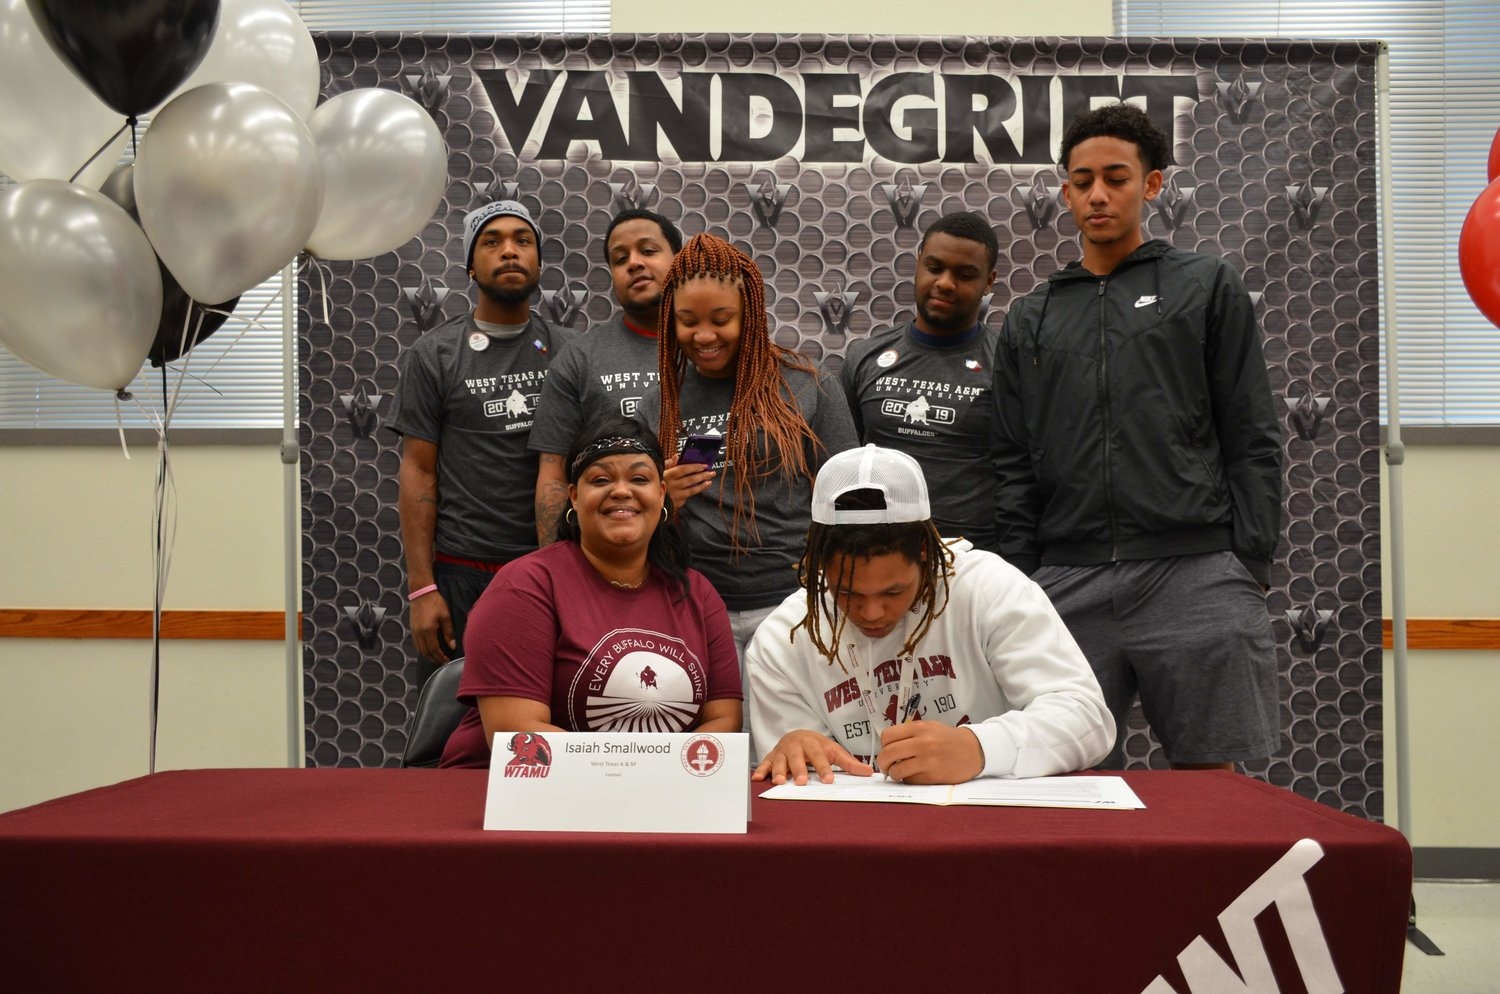 Vandegrift senior running back Isiah Smallwood signed to play football at West Texas A&M last Wednesday morning.